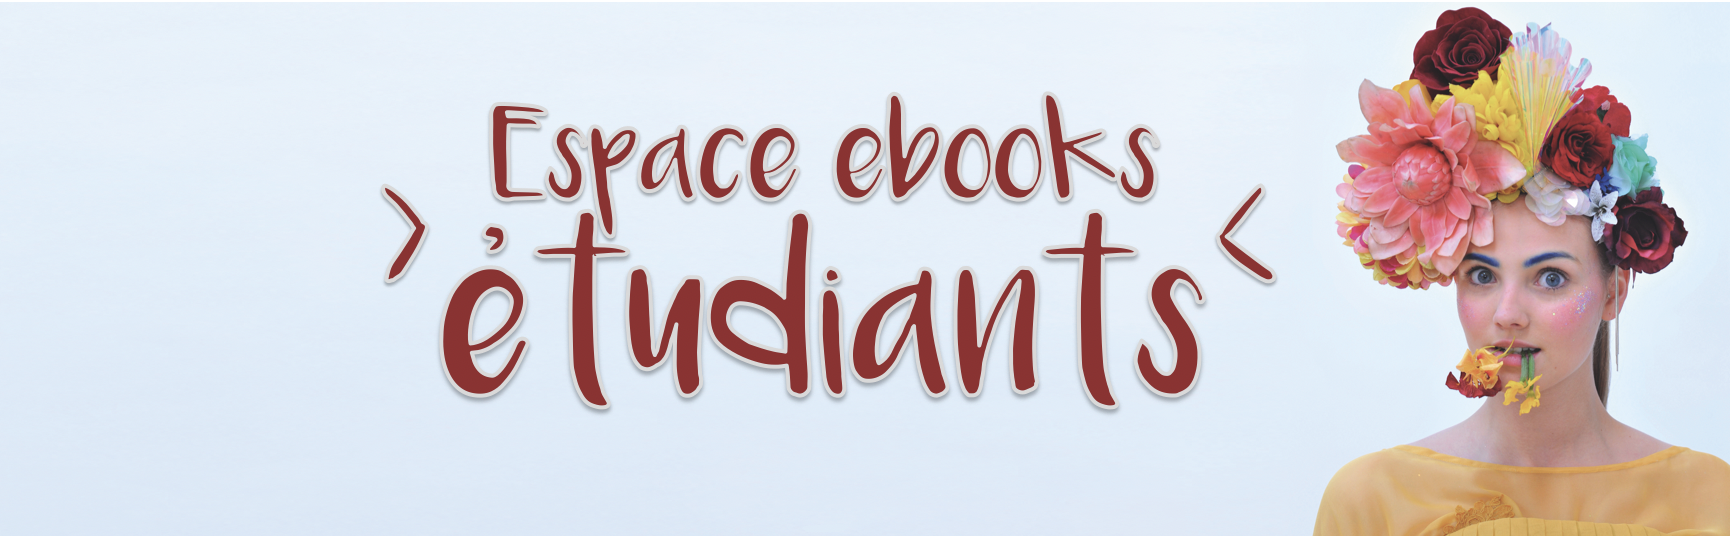 eBook étudiants